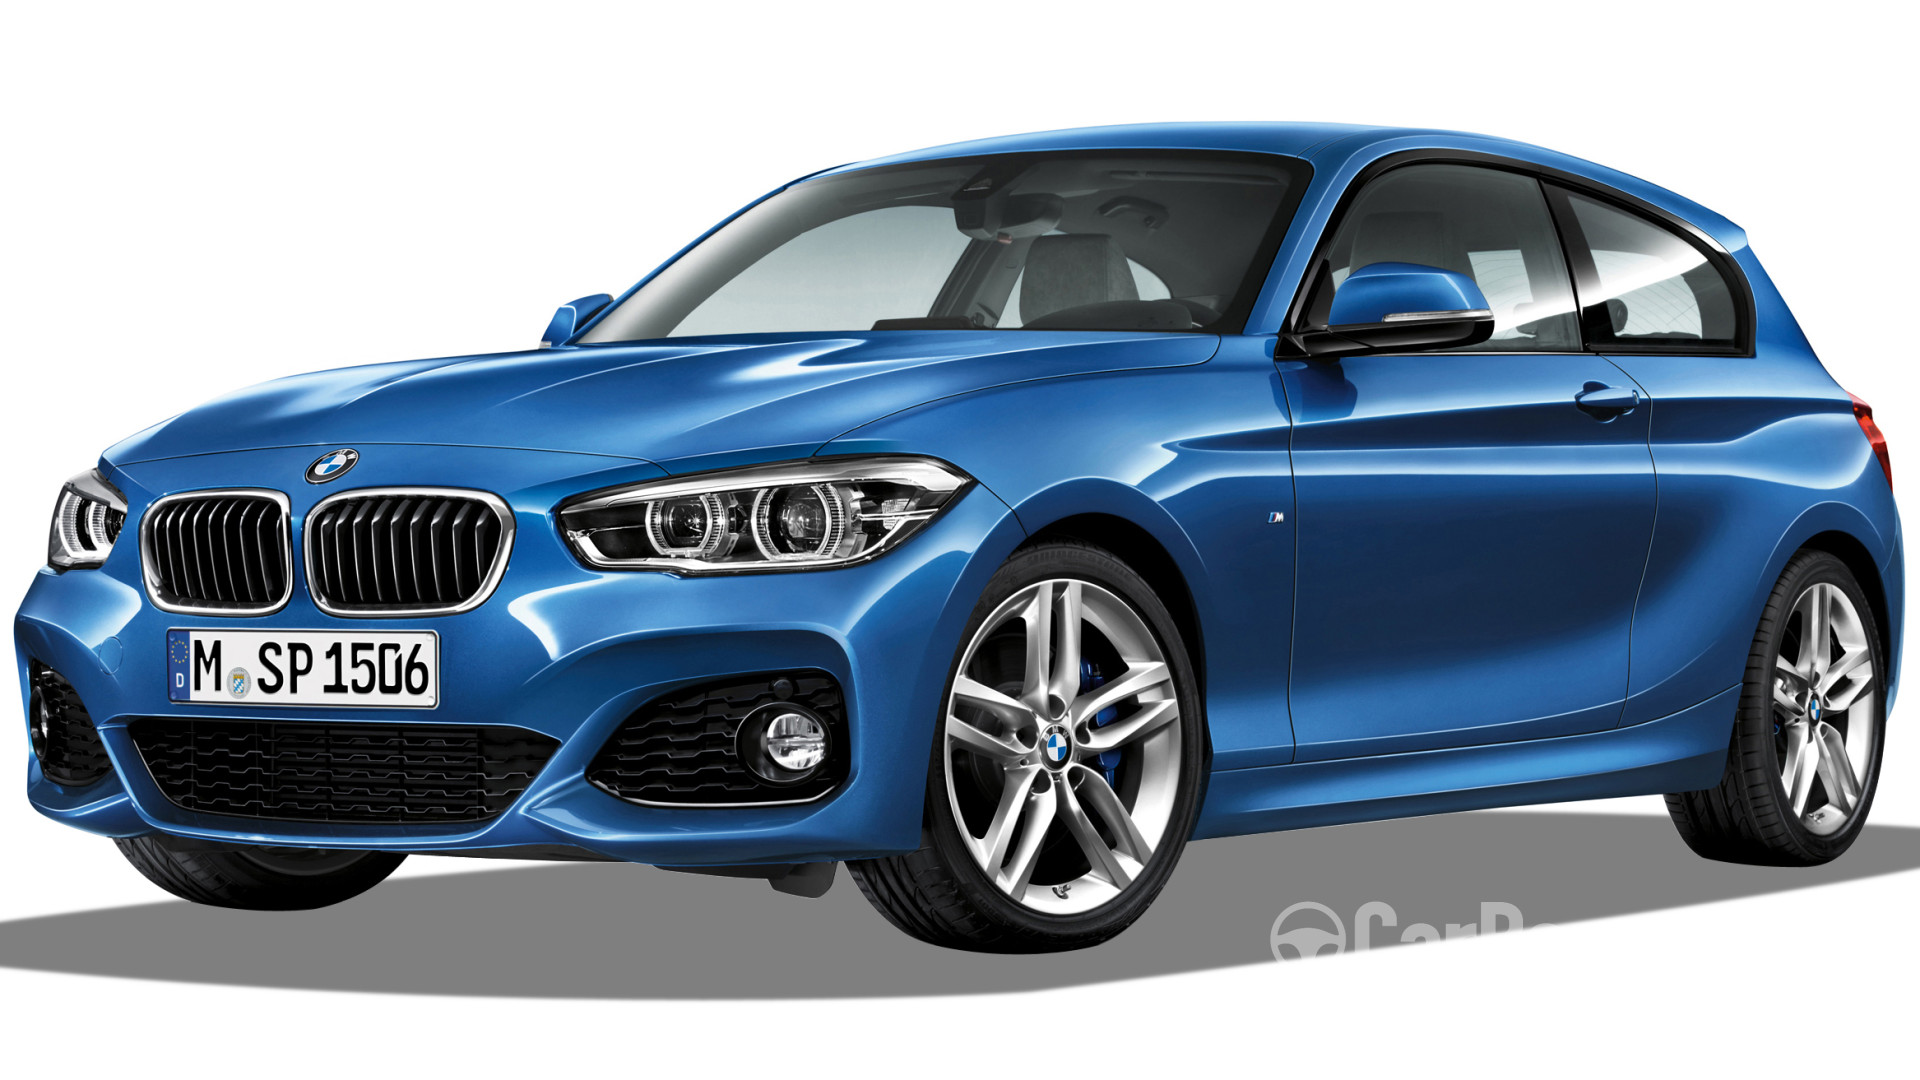 bmw 1 series f20 lci 2015 exterior image in malaysia reviews specs prices. Black Bedroom Furniture Sets. Home Design Ideas